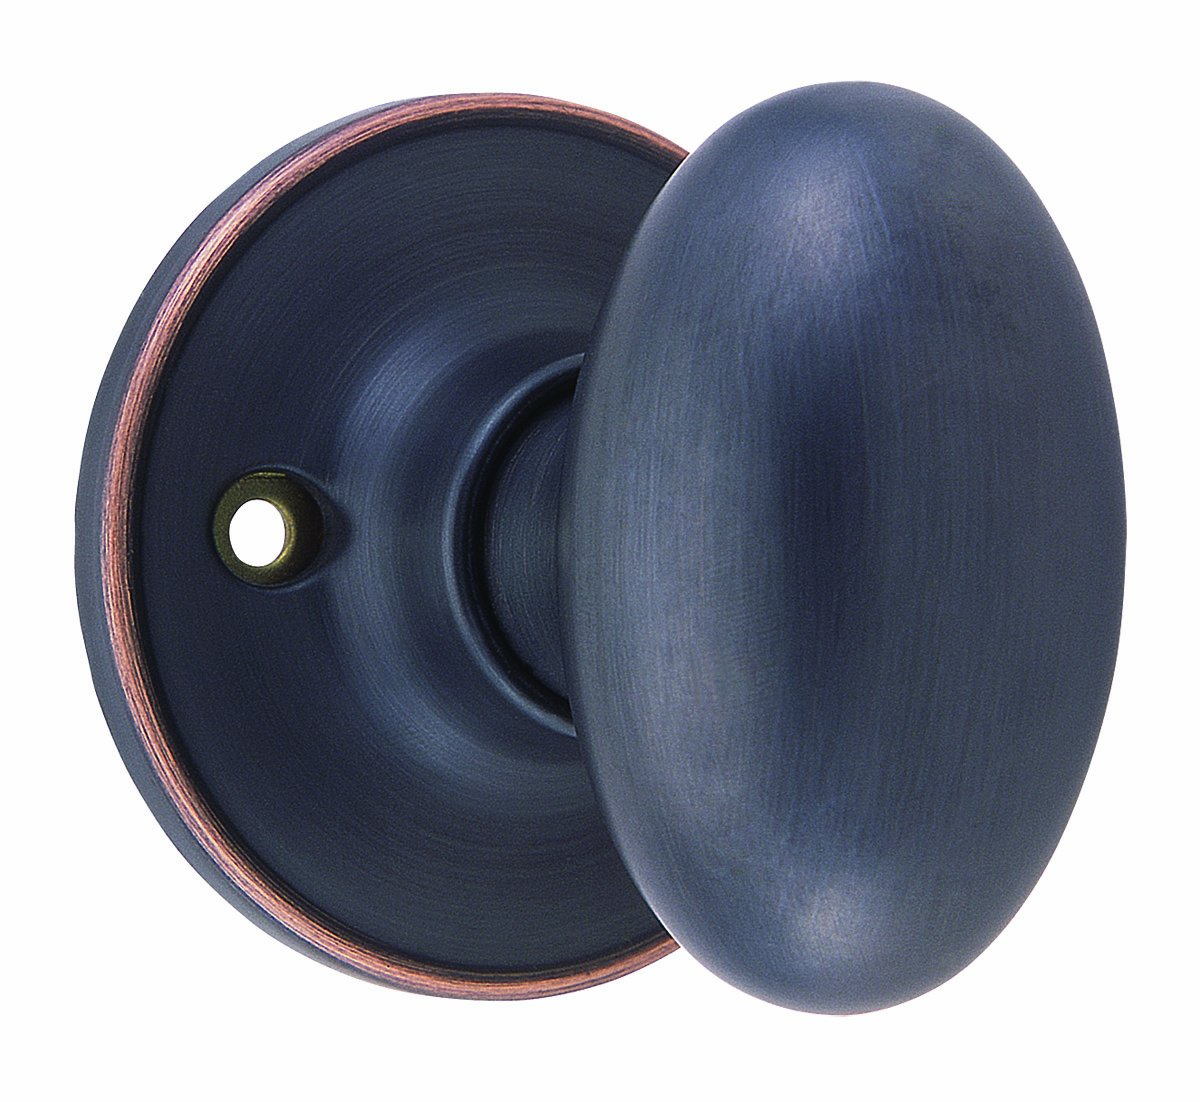 Design House 750653 Egg Dummy Door Knob, 2-Way Latch, Oil Rubbed ...